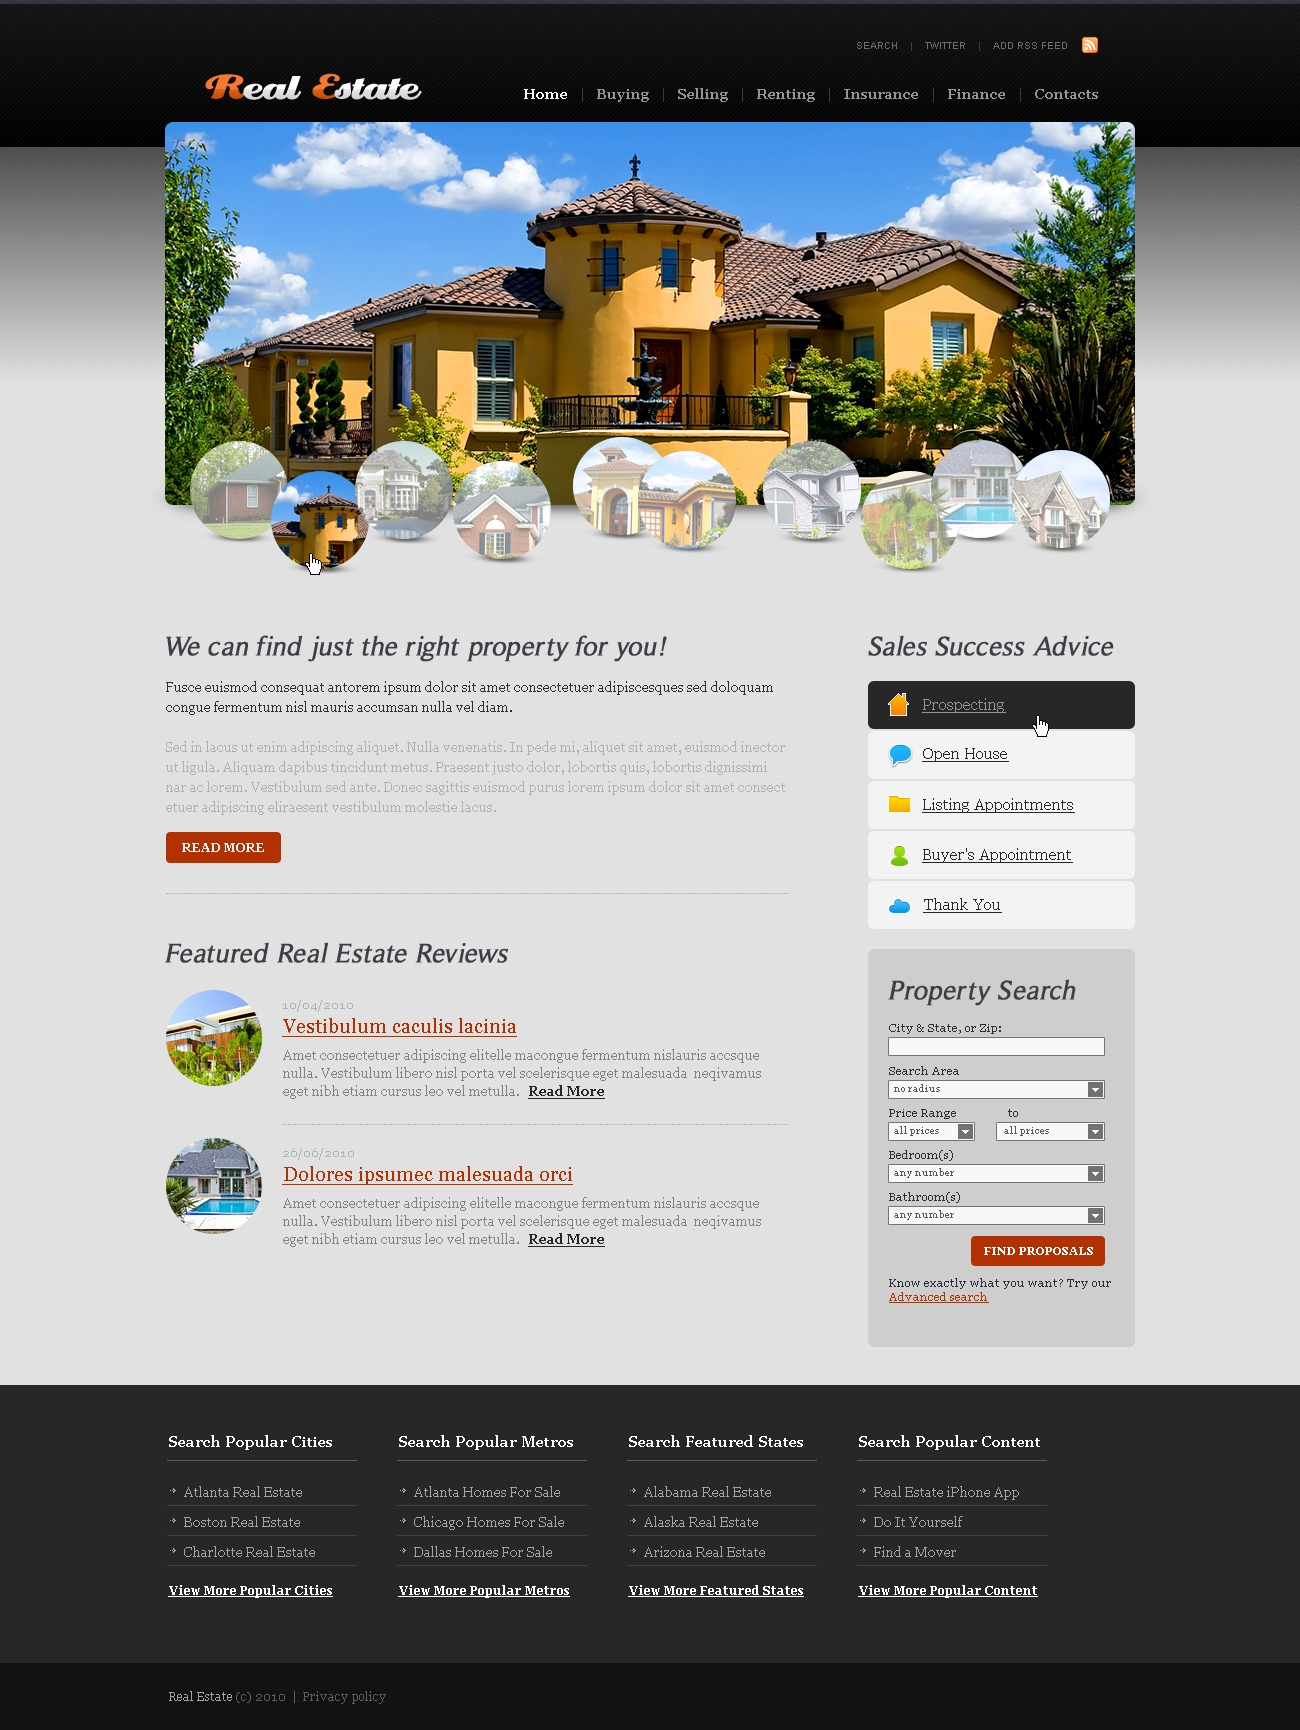 The Real Estate Agency PSD Design 54331, one of the best PSD templates of its kind (real estate, flash 8, wide), also known as real estate agency PSD template, services PSD template, house PSD template, home PSD template, apartment PSD template, buildings PSD template, finance PSD template, loan PSD template, sales PSD template, rentals PSD template, management PSD template, search PSD template, team PSD template, money PSD template, foreclosure PSD template, estimator PSD template, investment PSD template, development PSD template, constructions PSD template, architecture PSD template, engineering PSD template, apartment PSD template, sale PSD template, rent PSD template, architecture PSD template, broker PSD template, lots and related with real estate agency, services, house, home, apartment, buildings, finance, loan, sales, rentals, management, search, team, money, foreclosure, estimator, investment, development, constructions, architecture, engineering, apartment, sale, rent, architecture, broker, lots, etc.